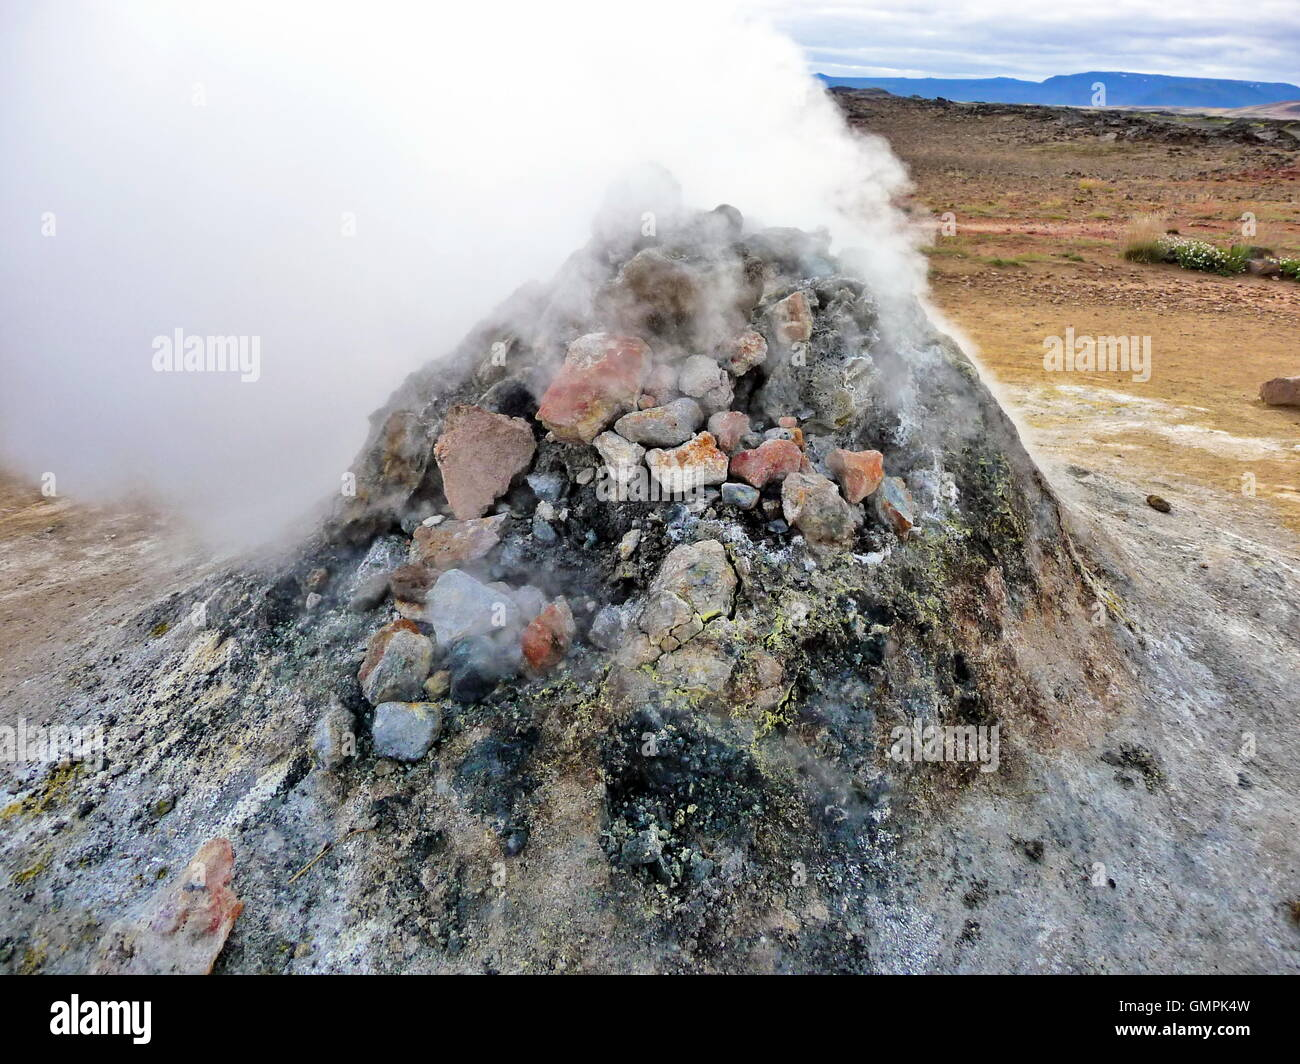 Iceland geothermal fumarole - Stock Image